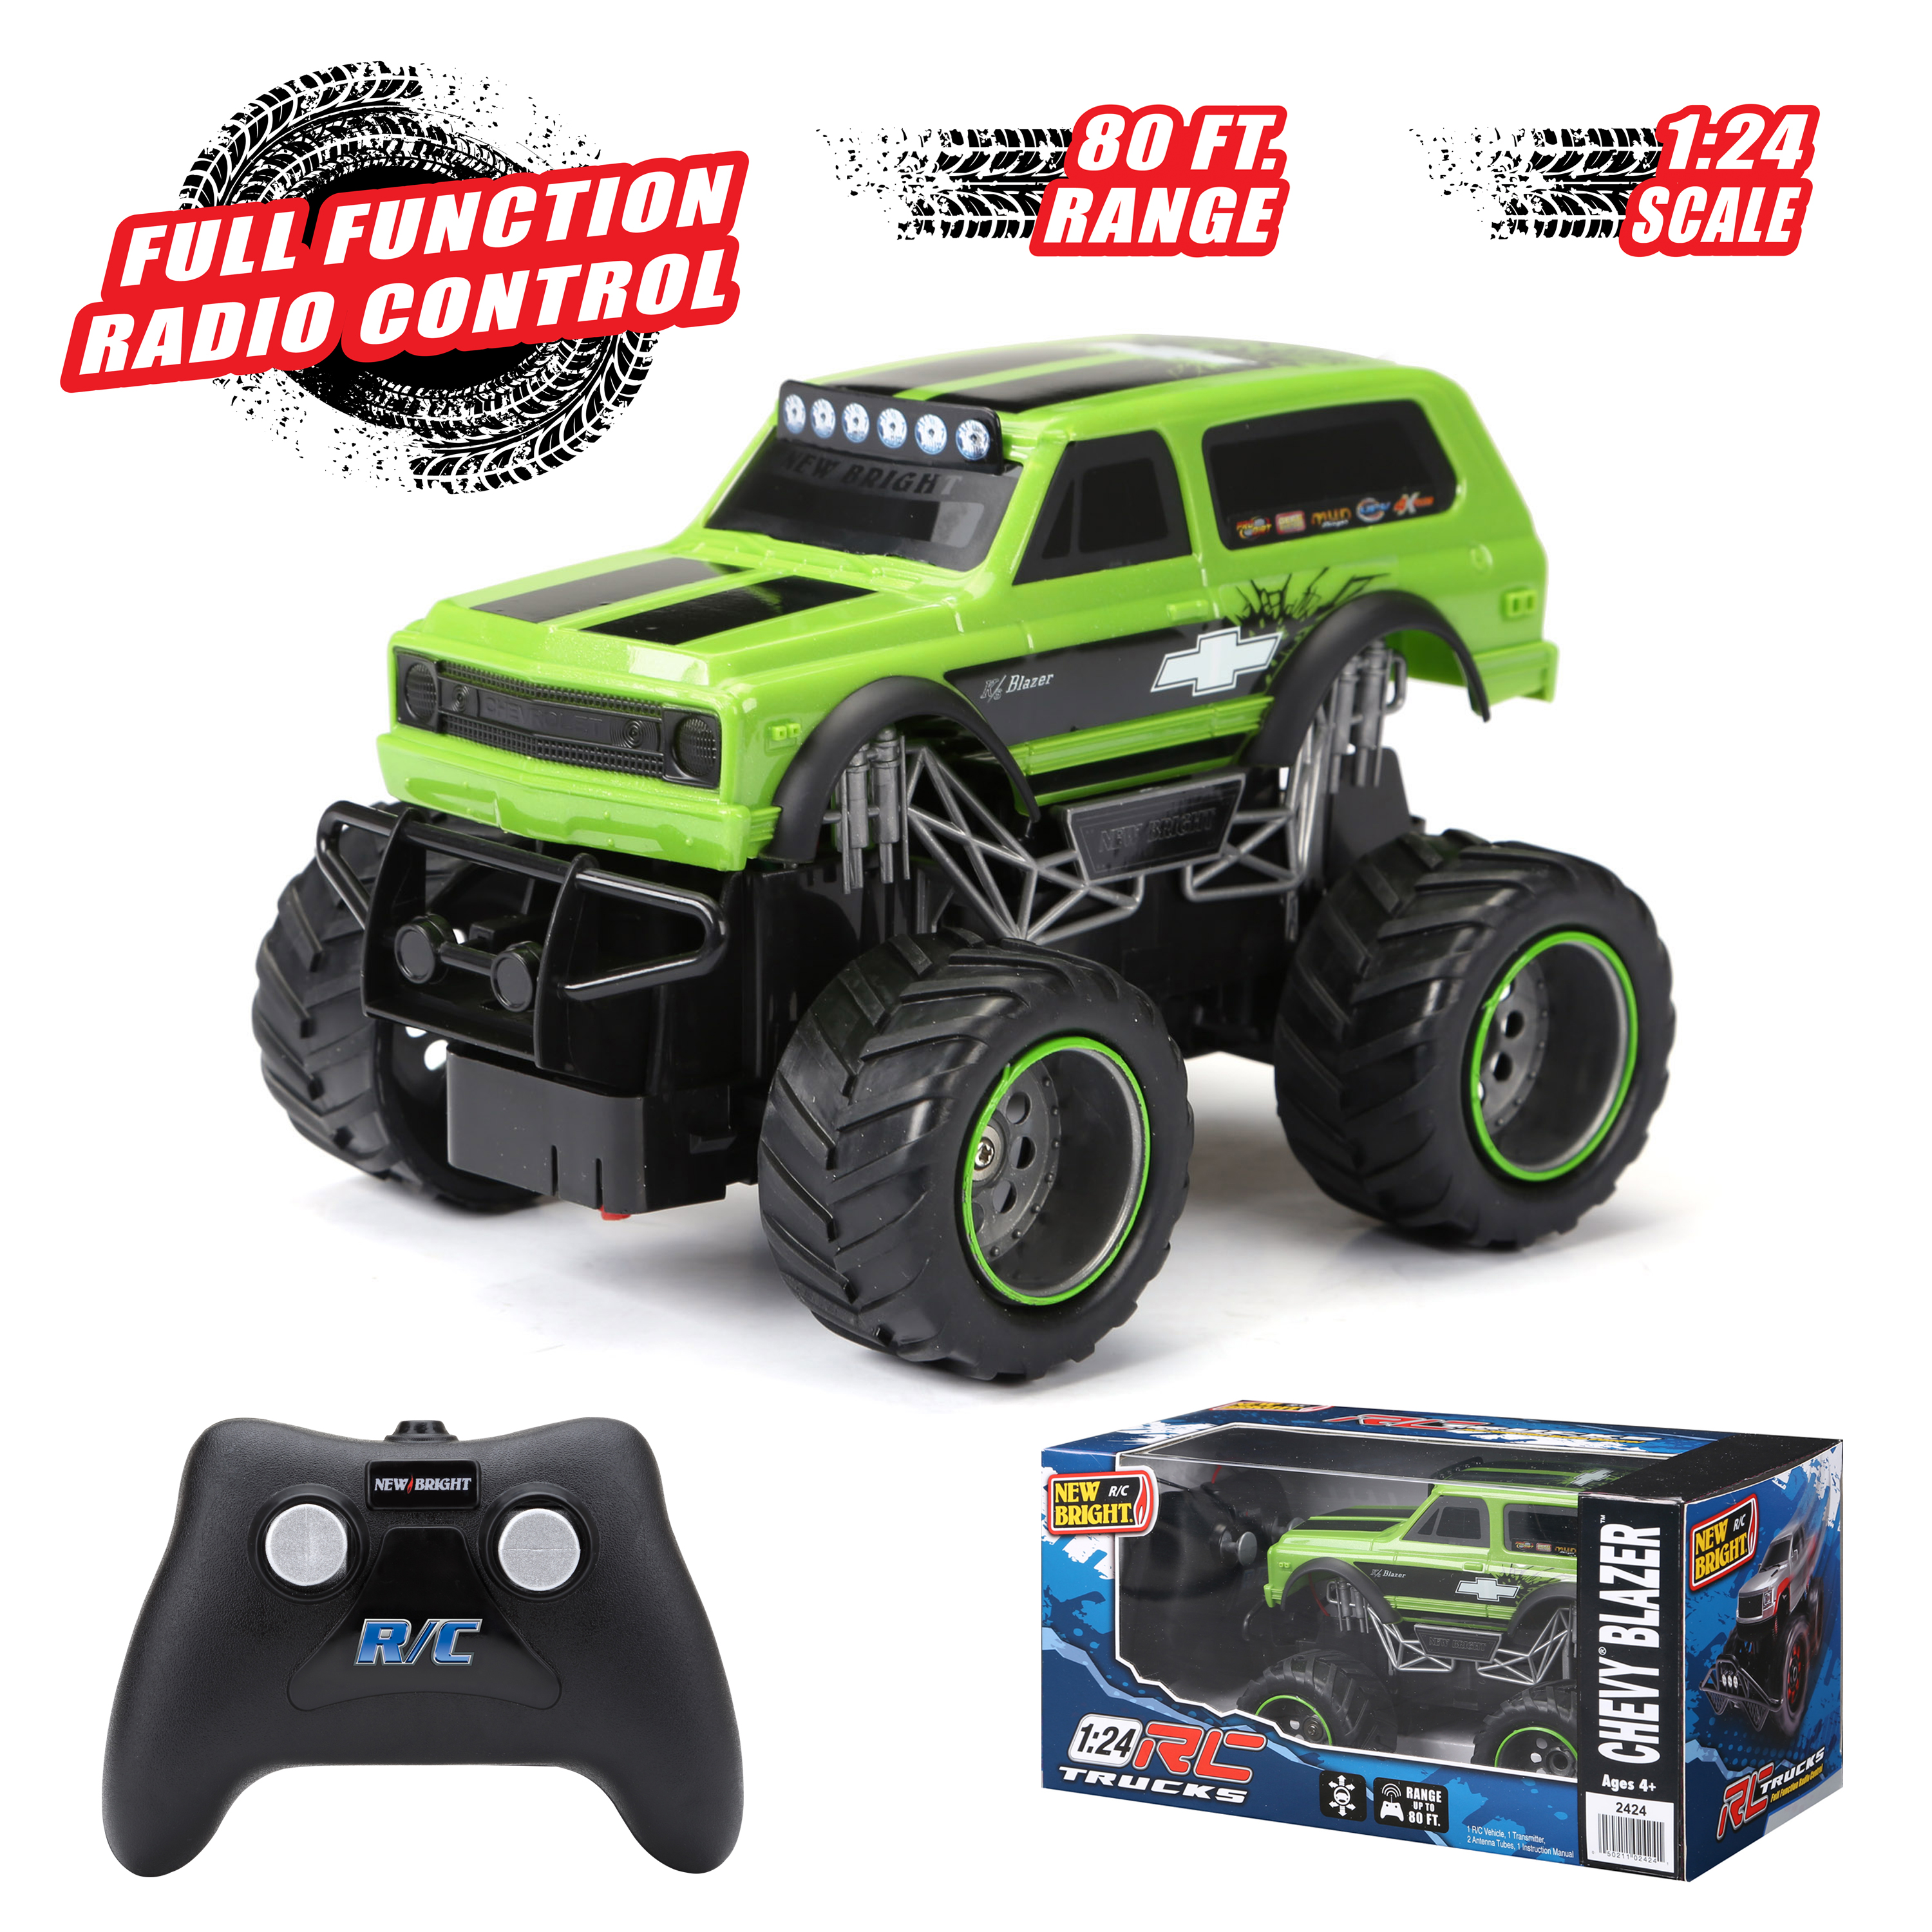 ghdonat.com RC Radio Control Truck Toy for Toddlers Kids Remote ...